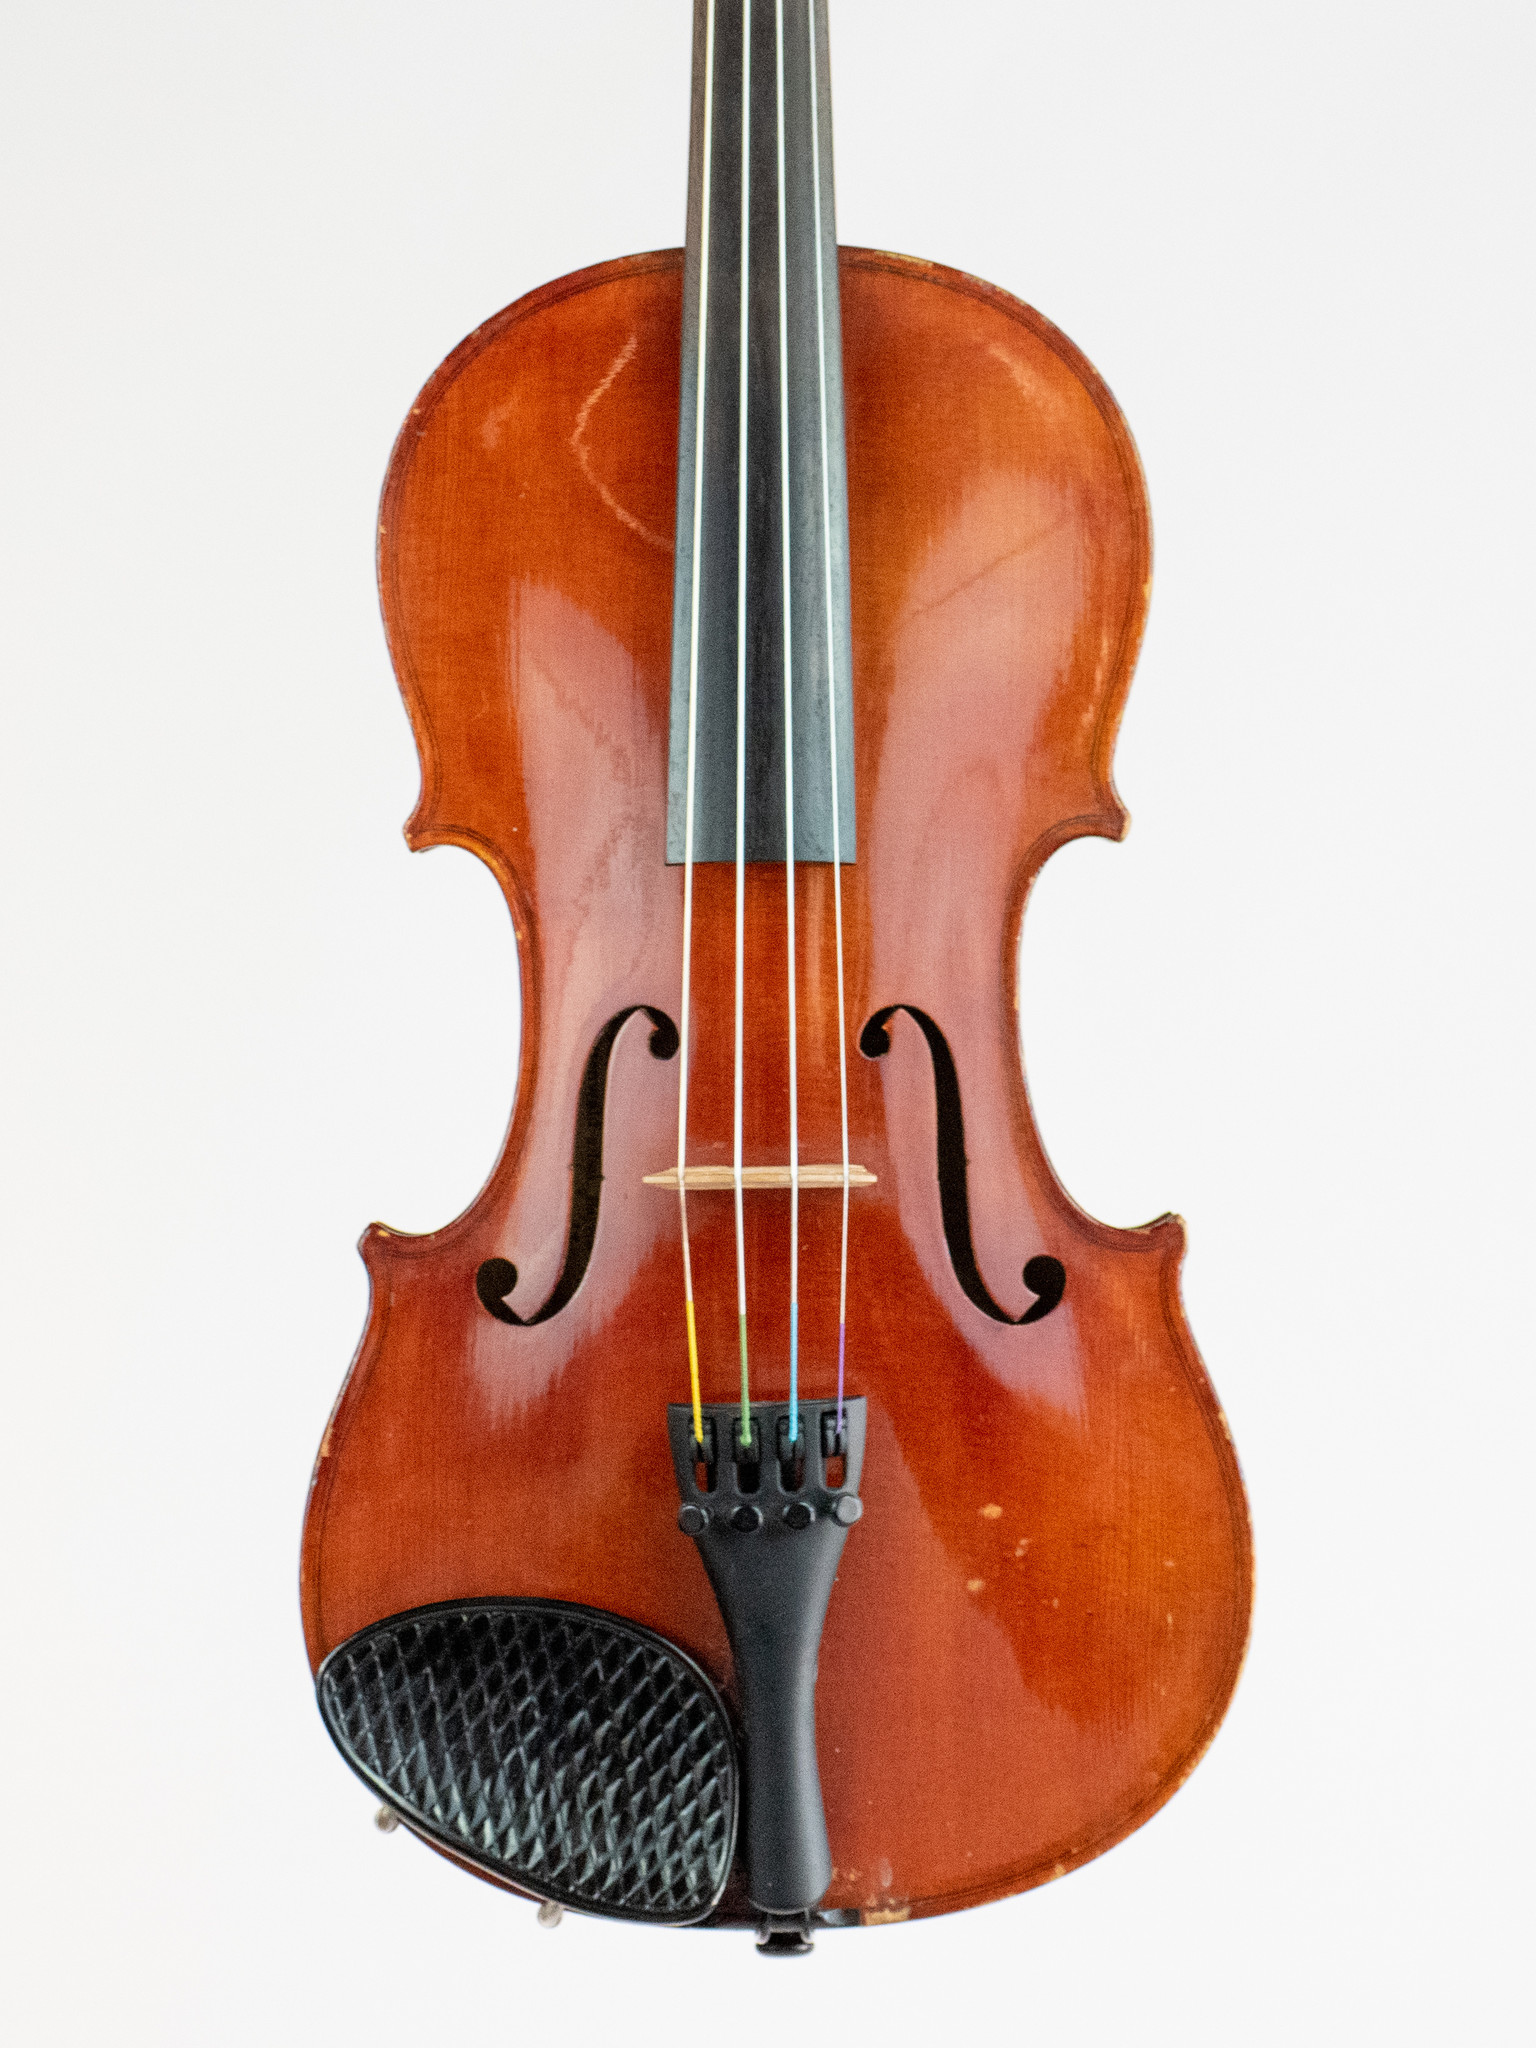 J.A. Baader 3/4 violin outfit, used, Mittenwald 1922